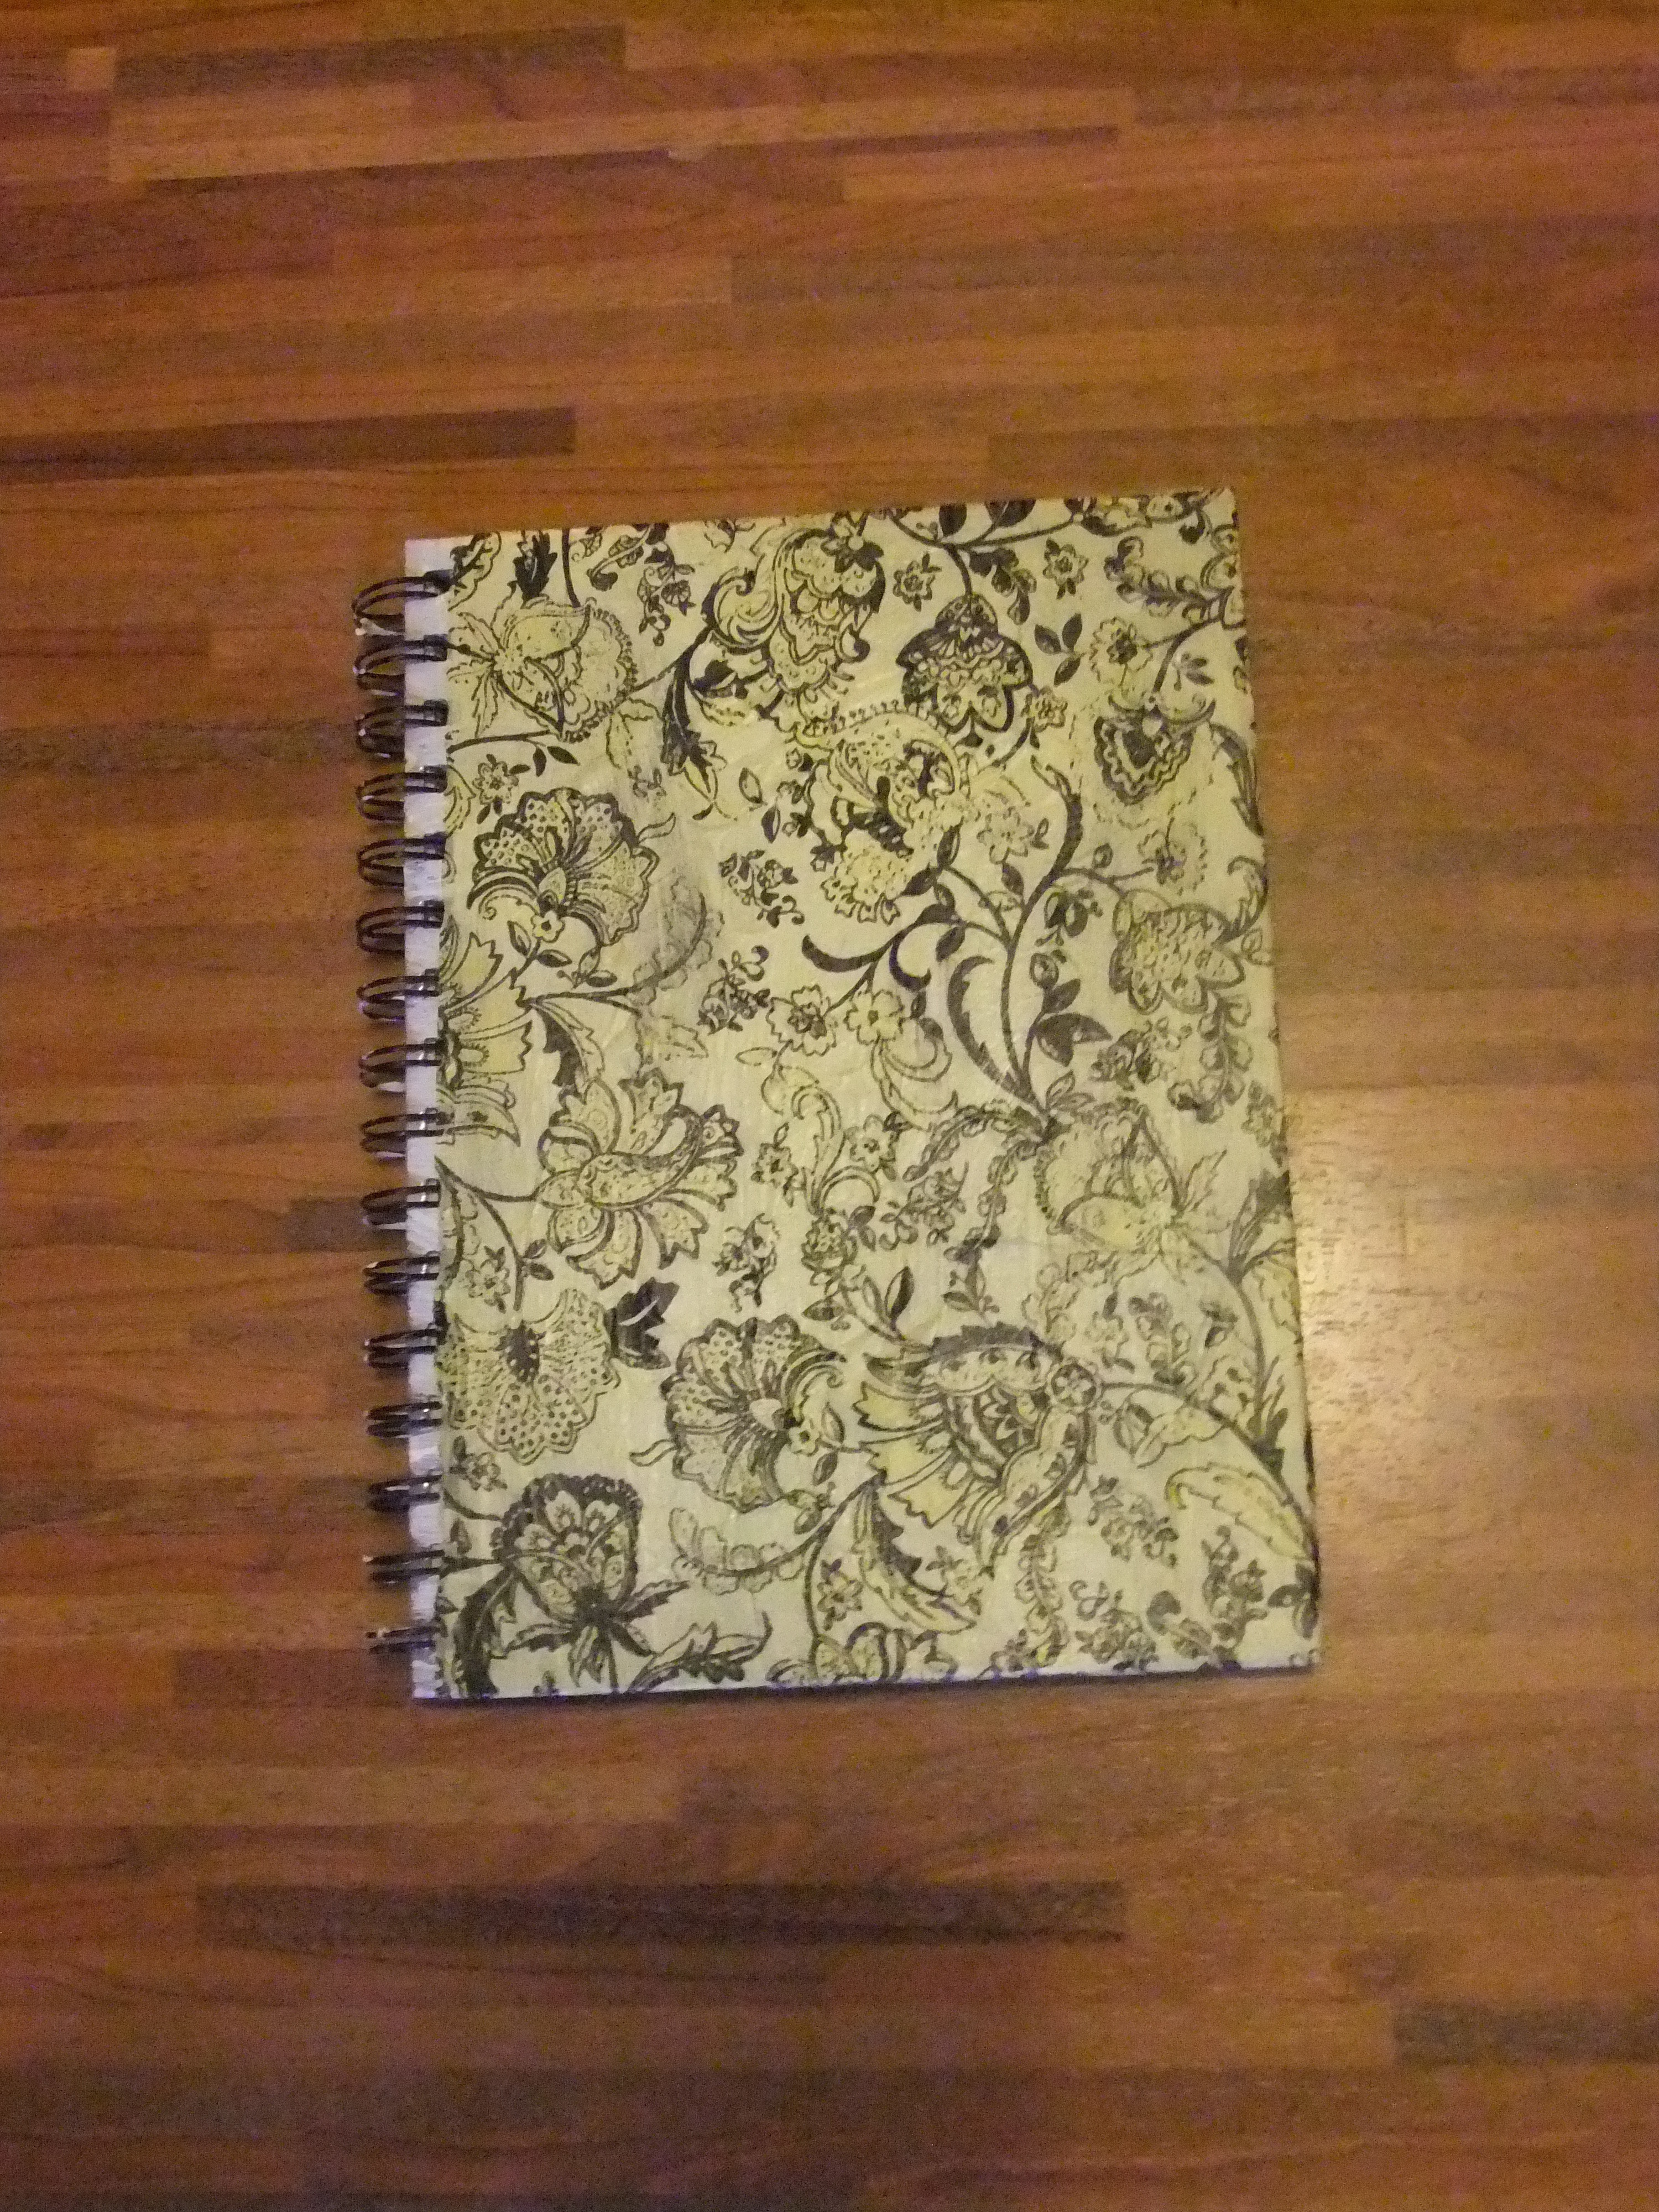 Book Cover Out Of Paper ~ Notebook cover made of paper · how to make a book